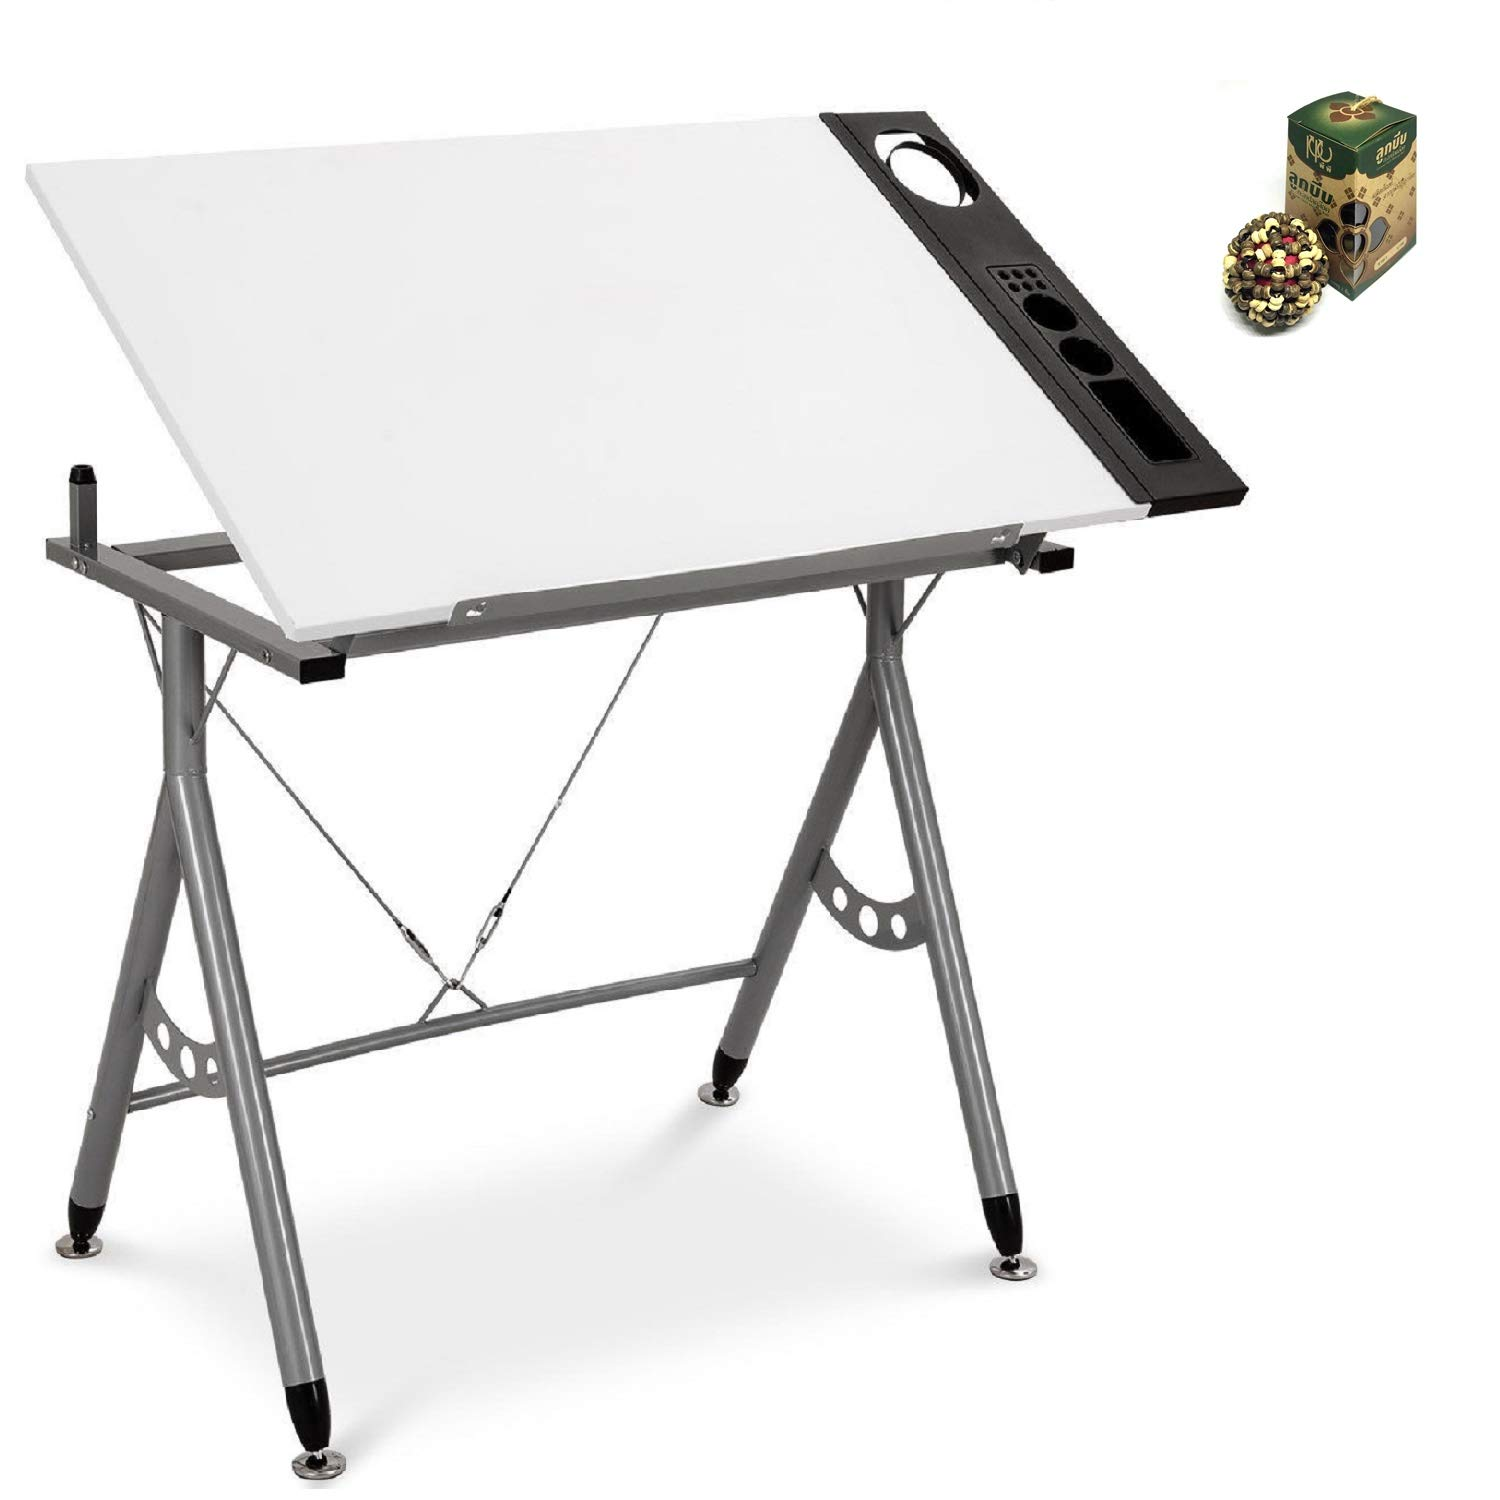 Adjustable Art & Craft Station Drawing Desk w/Side Tray by SpiritOne + Gift Coconut Shell Massage Ball by COSTWAY